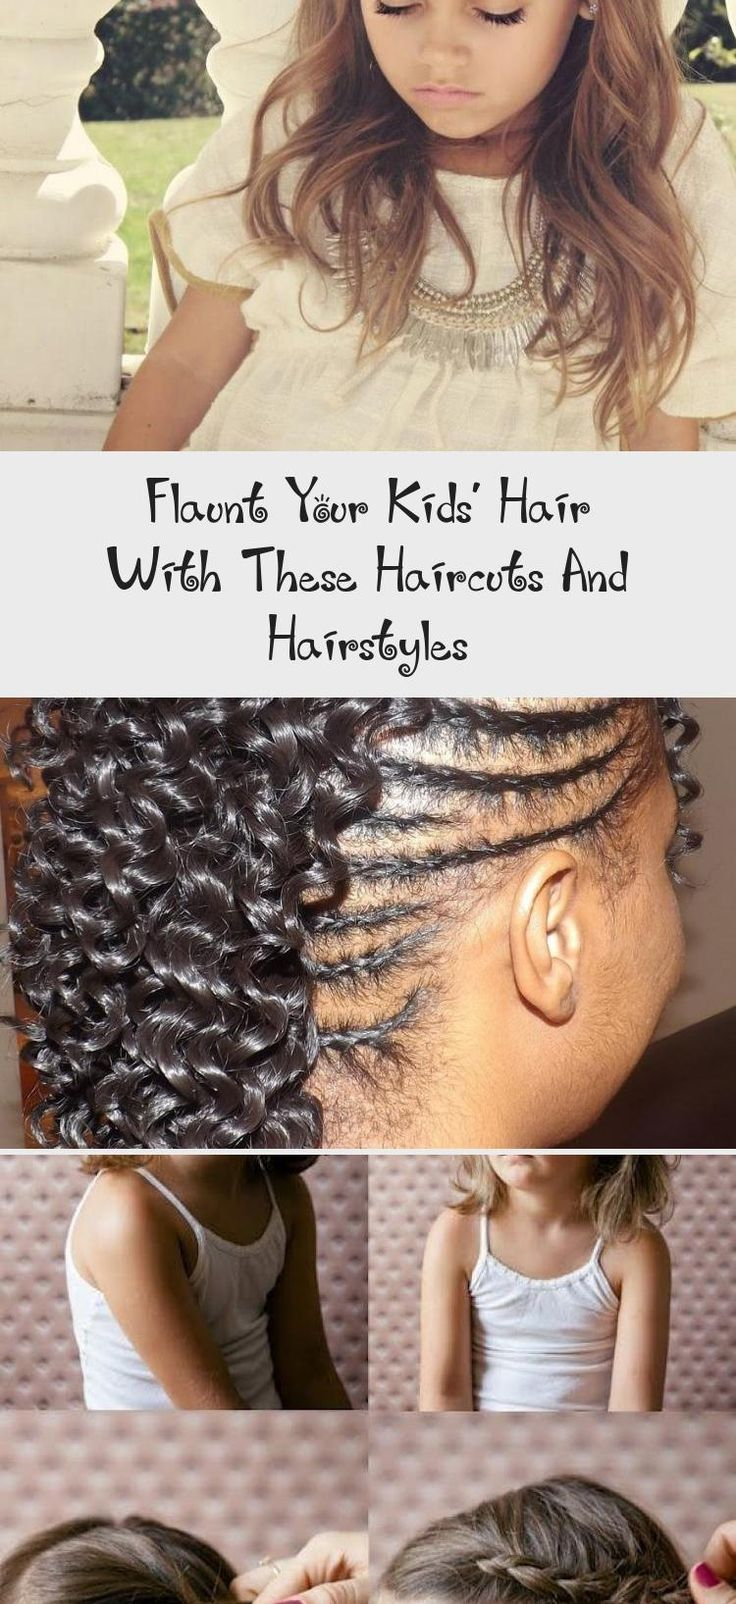 cool   Flaunt your kids' hair with these haircuts and hairstyles #babyhairstylesStepByStep #babyhairstylesBiracial #Naturalbabyhairstyles #Simplebabyhairstyles #babyhairstylesToddler